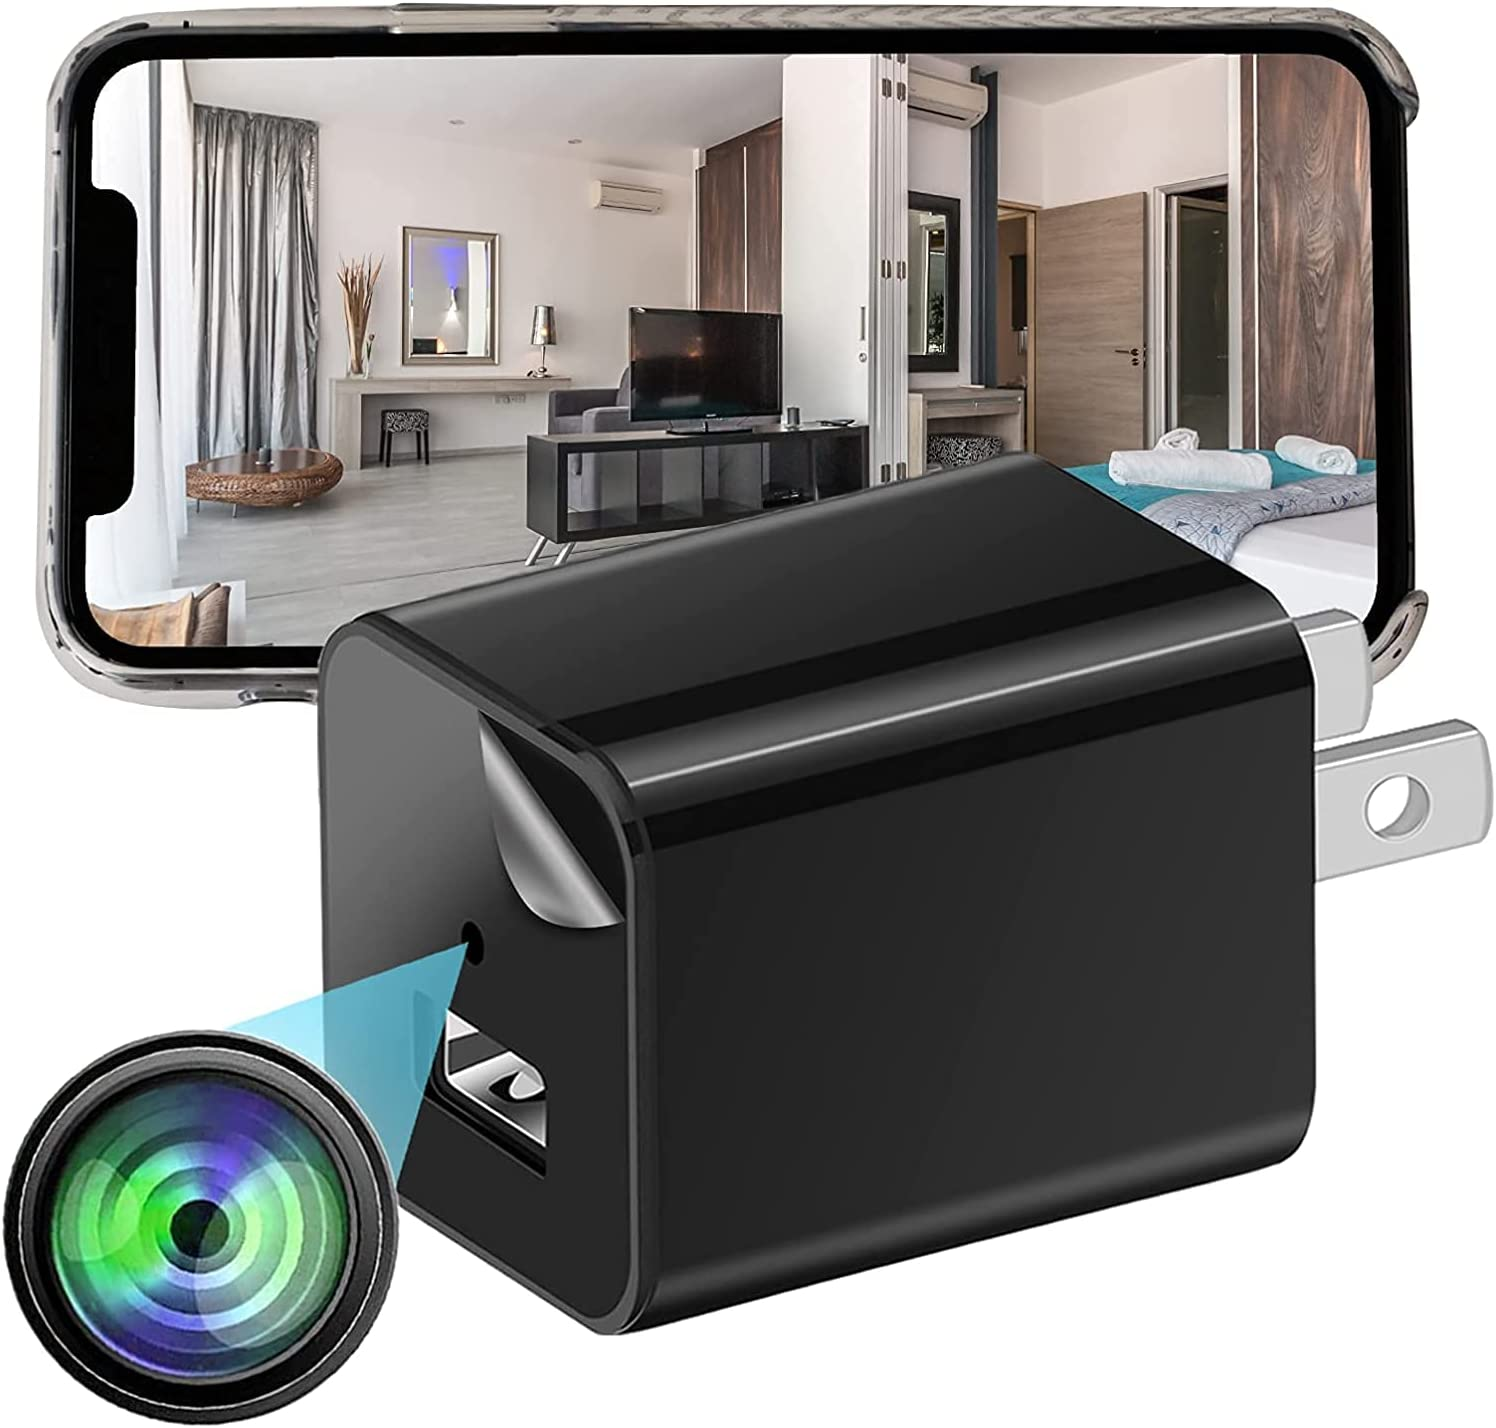 SALENEW very popular! WiFi Camera Indoor HD1080P Video with Weekly update HD Mo Vision Night